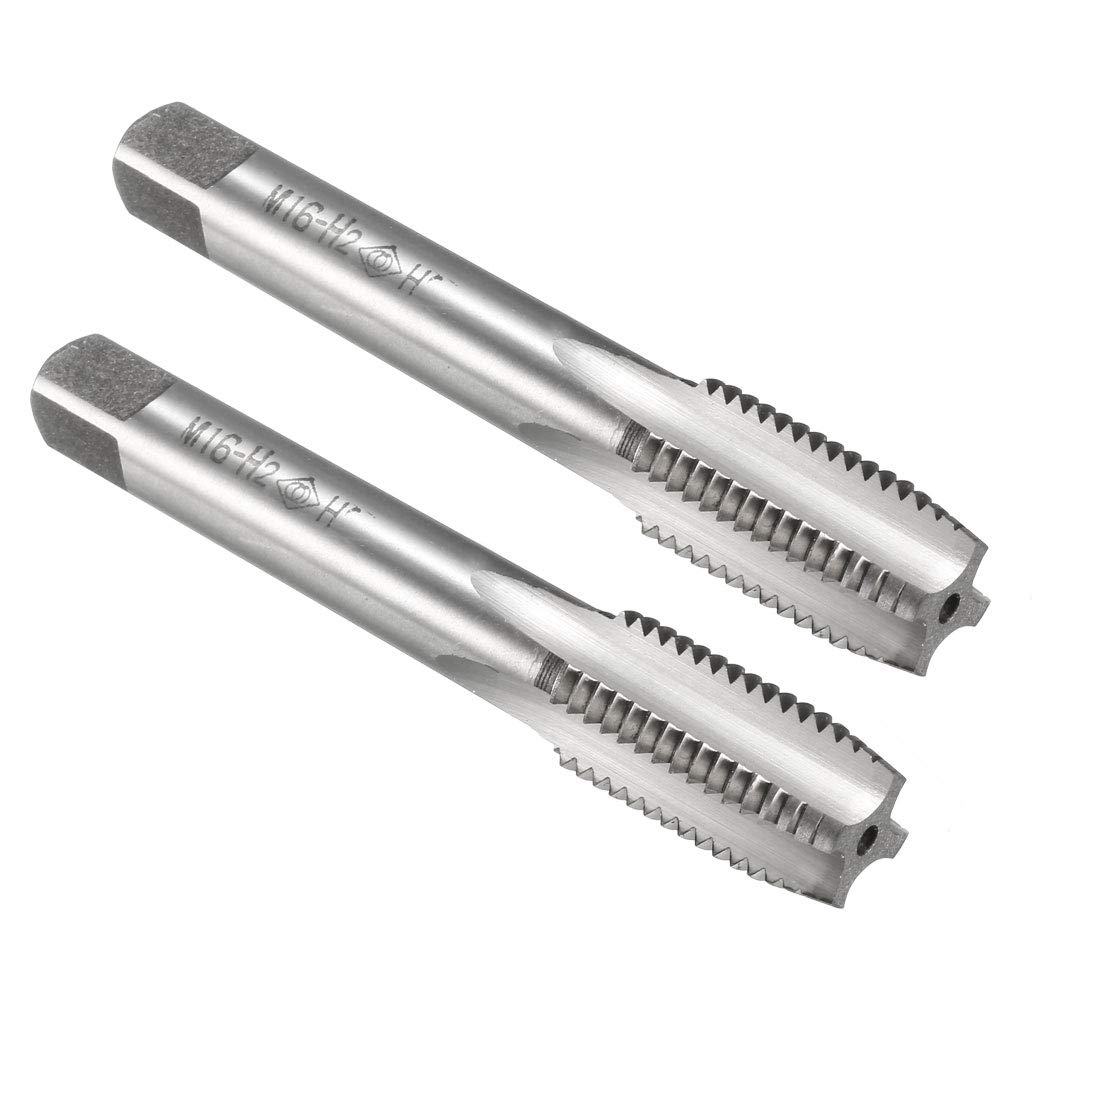 uxcell Metric Taps M8 Pitch H2 Right Hand Thread Plug Tap HSS for Threading Machine Electric Drill DIY